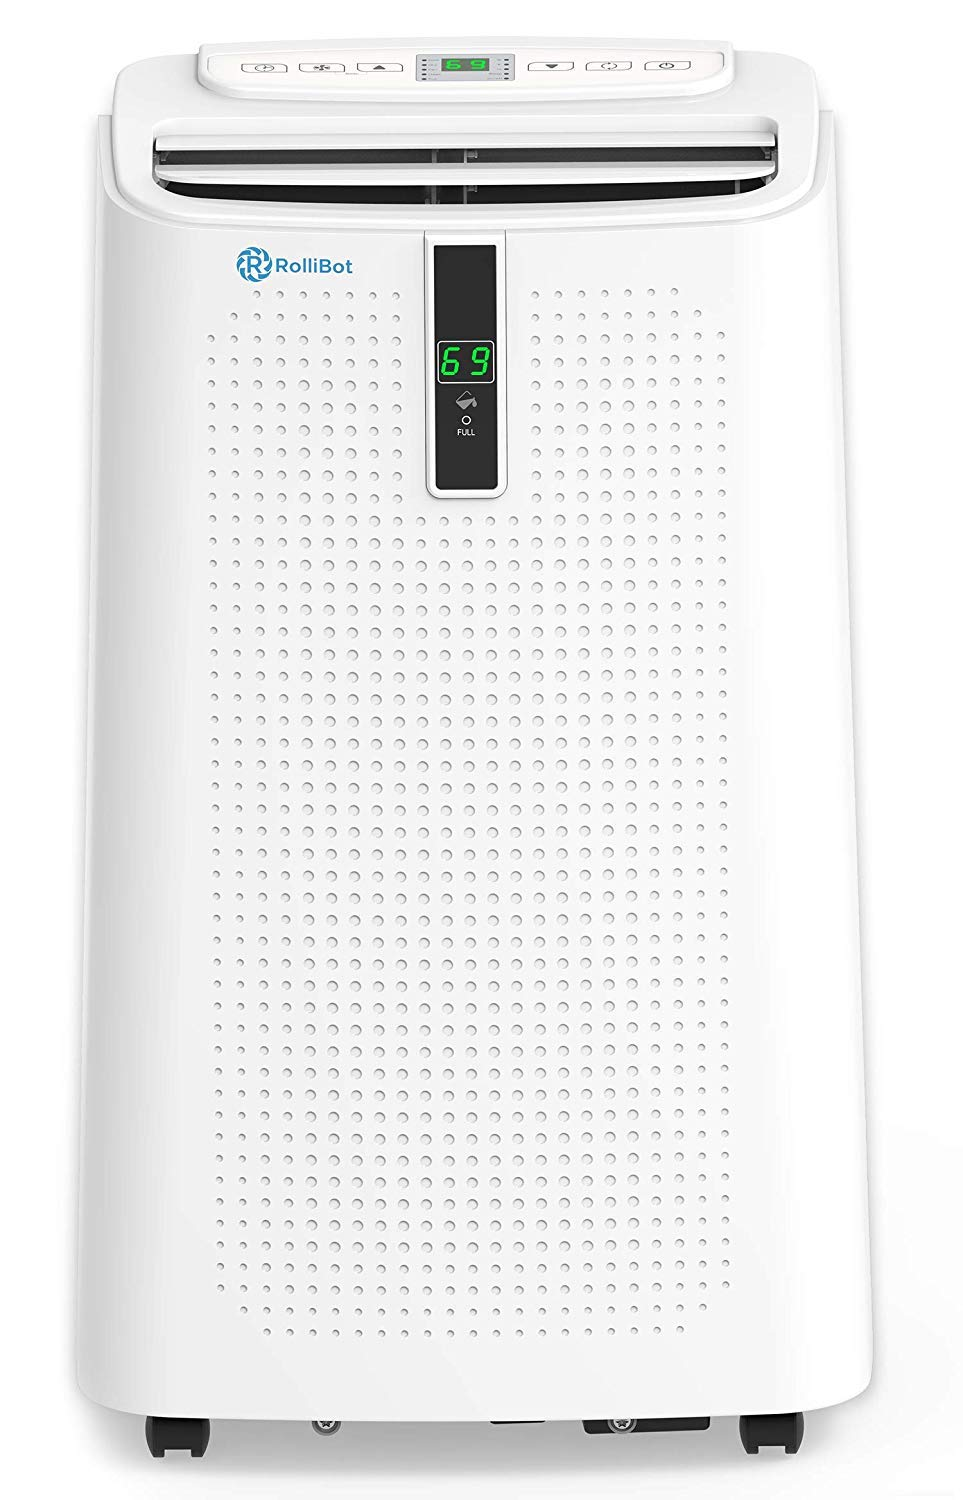 RolliCool Alexa-Enabled Portable Air Conditioner 12,000 BTU AC Unit with Heater, Dehumidifier, Fan, Mobile App (COOL310-19)